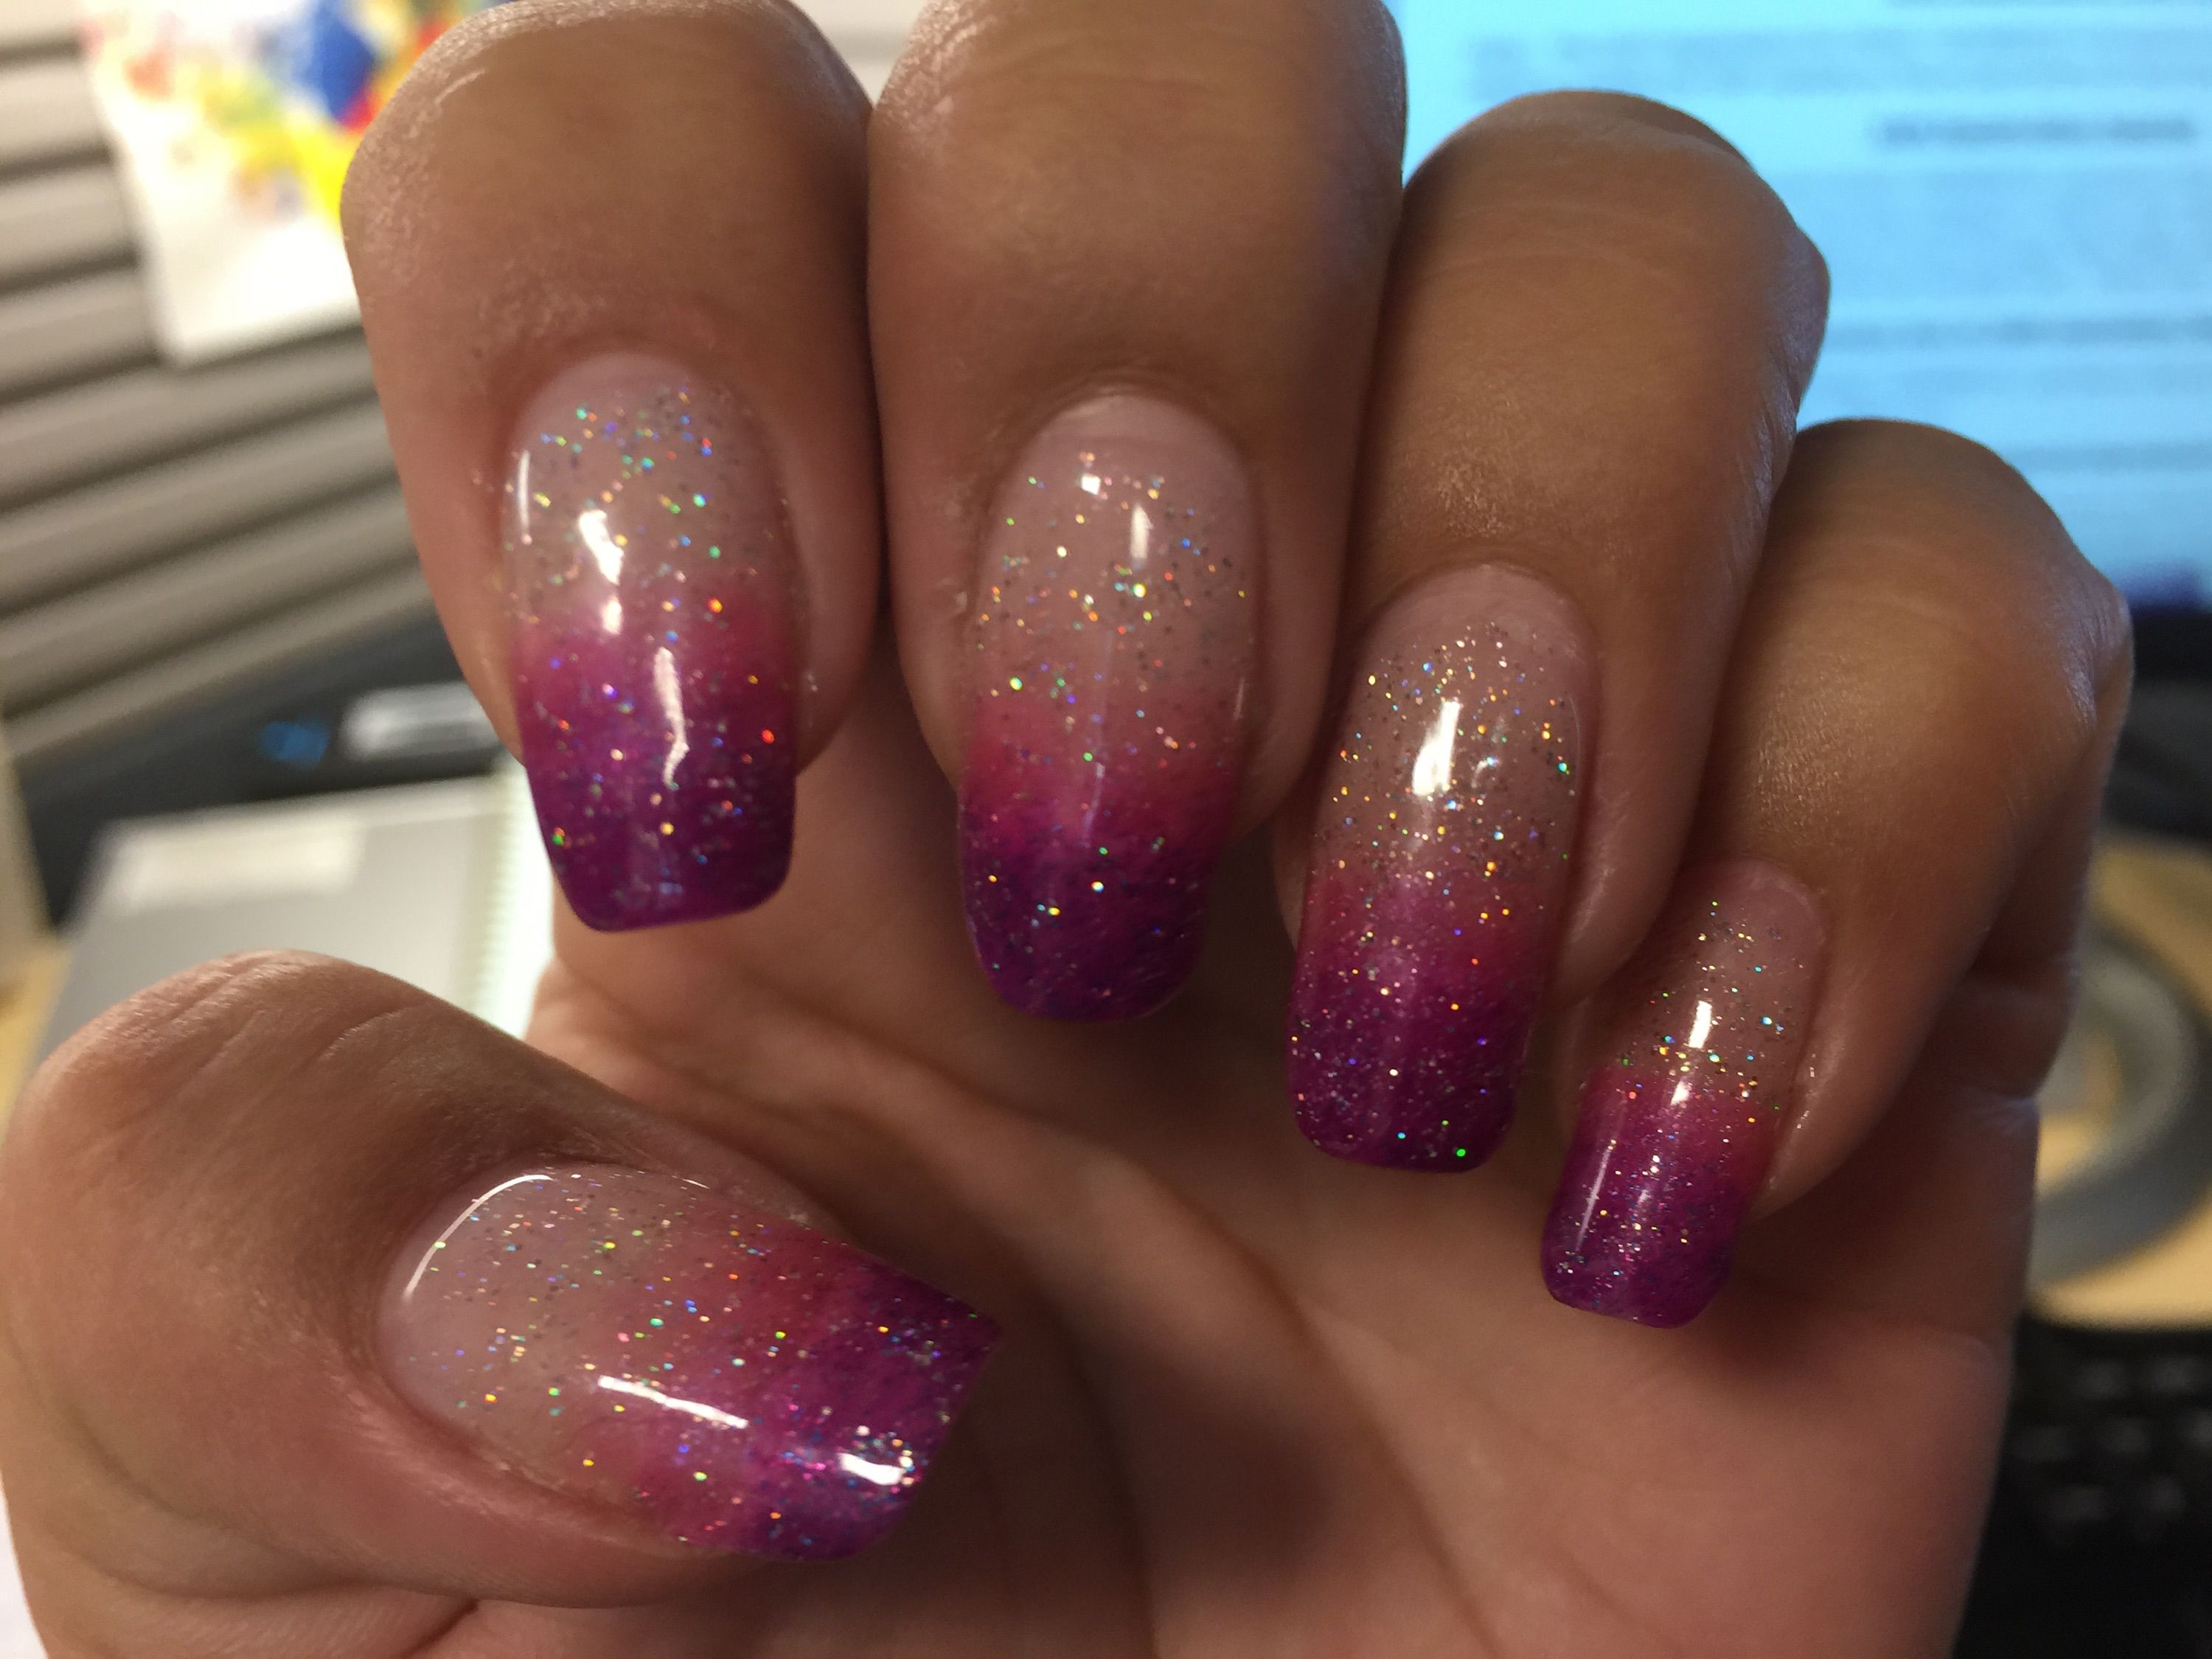 Dees Ombre Gel Nails With Pink Purple And Glitter Nail Polish